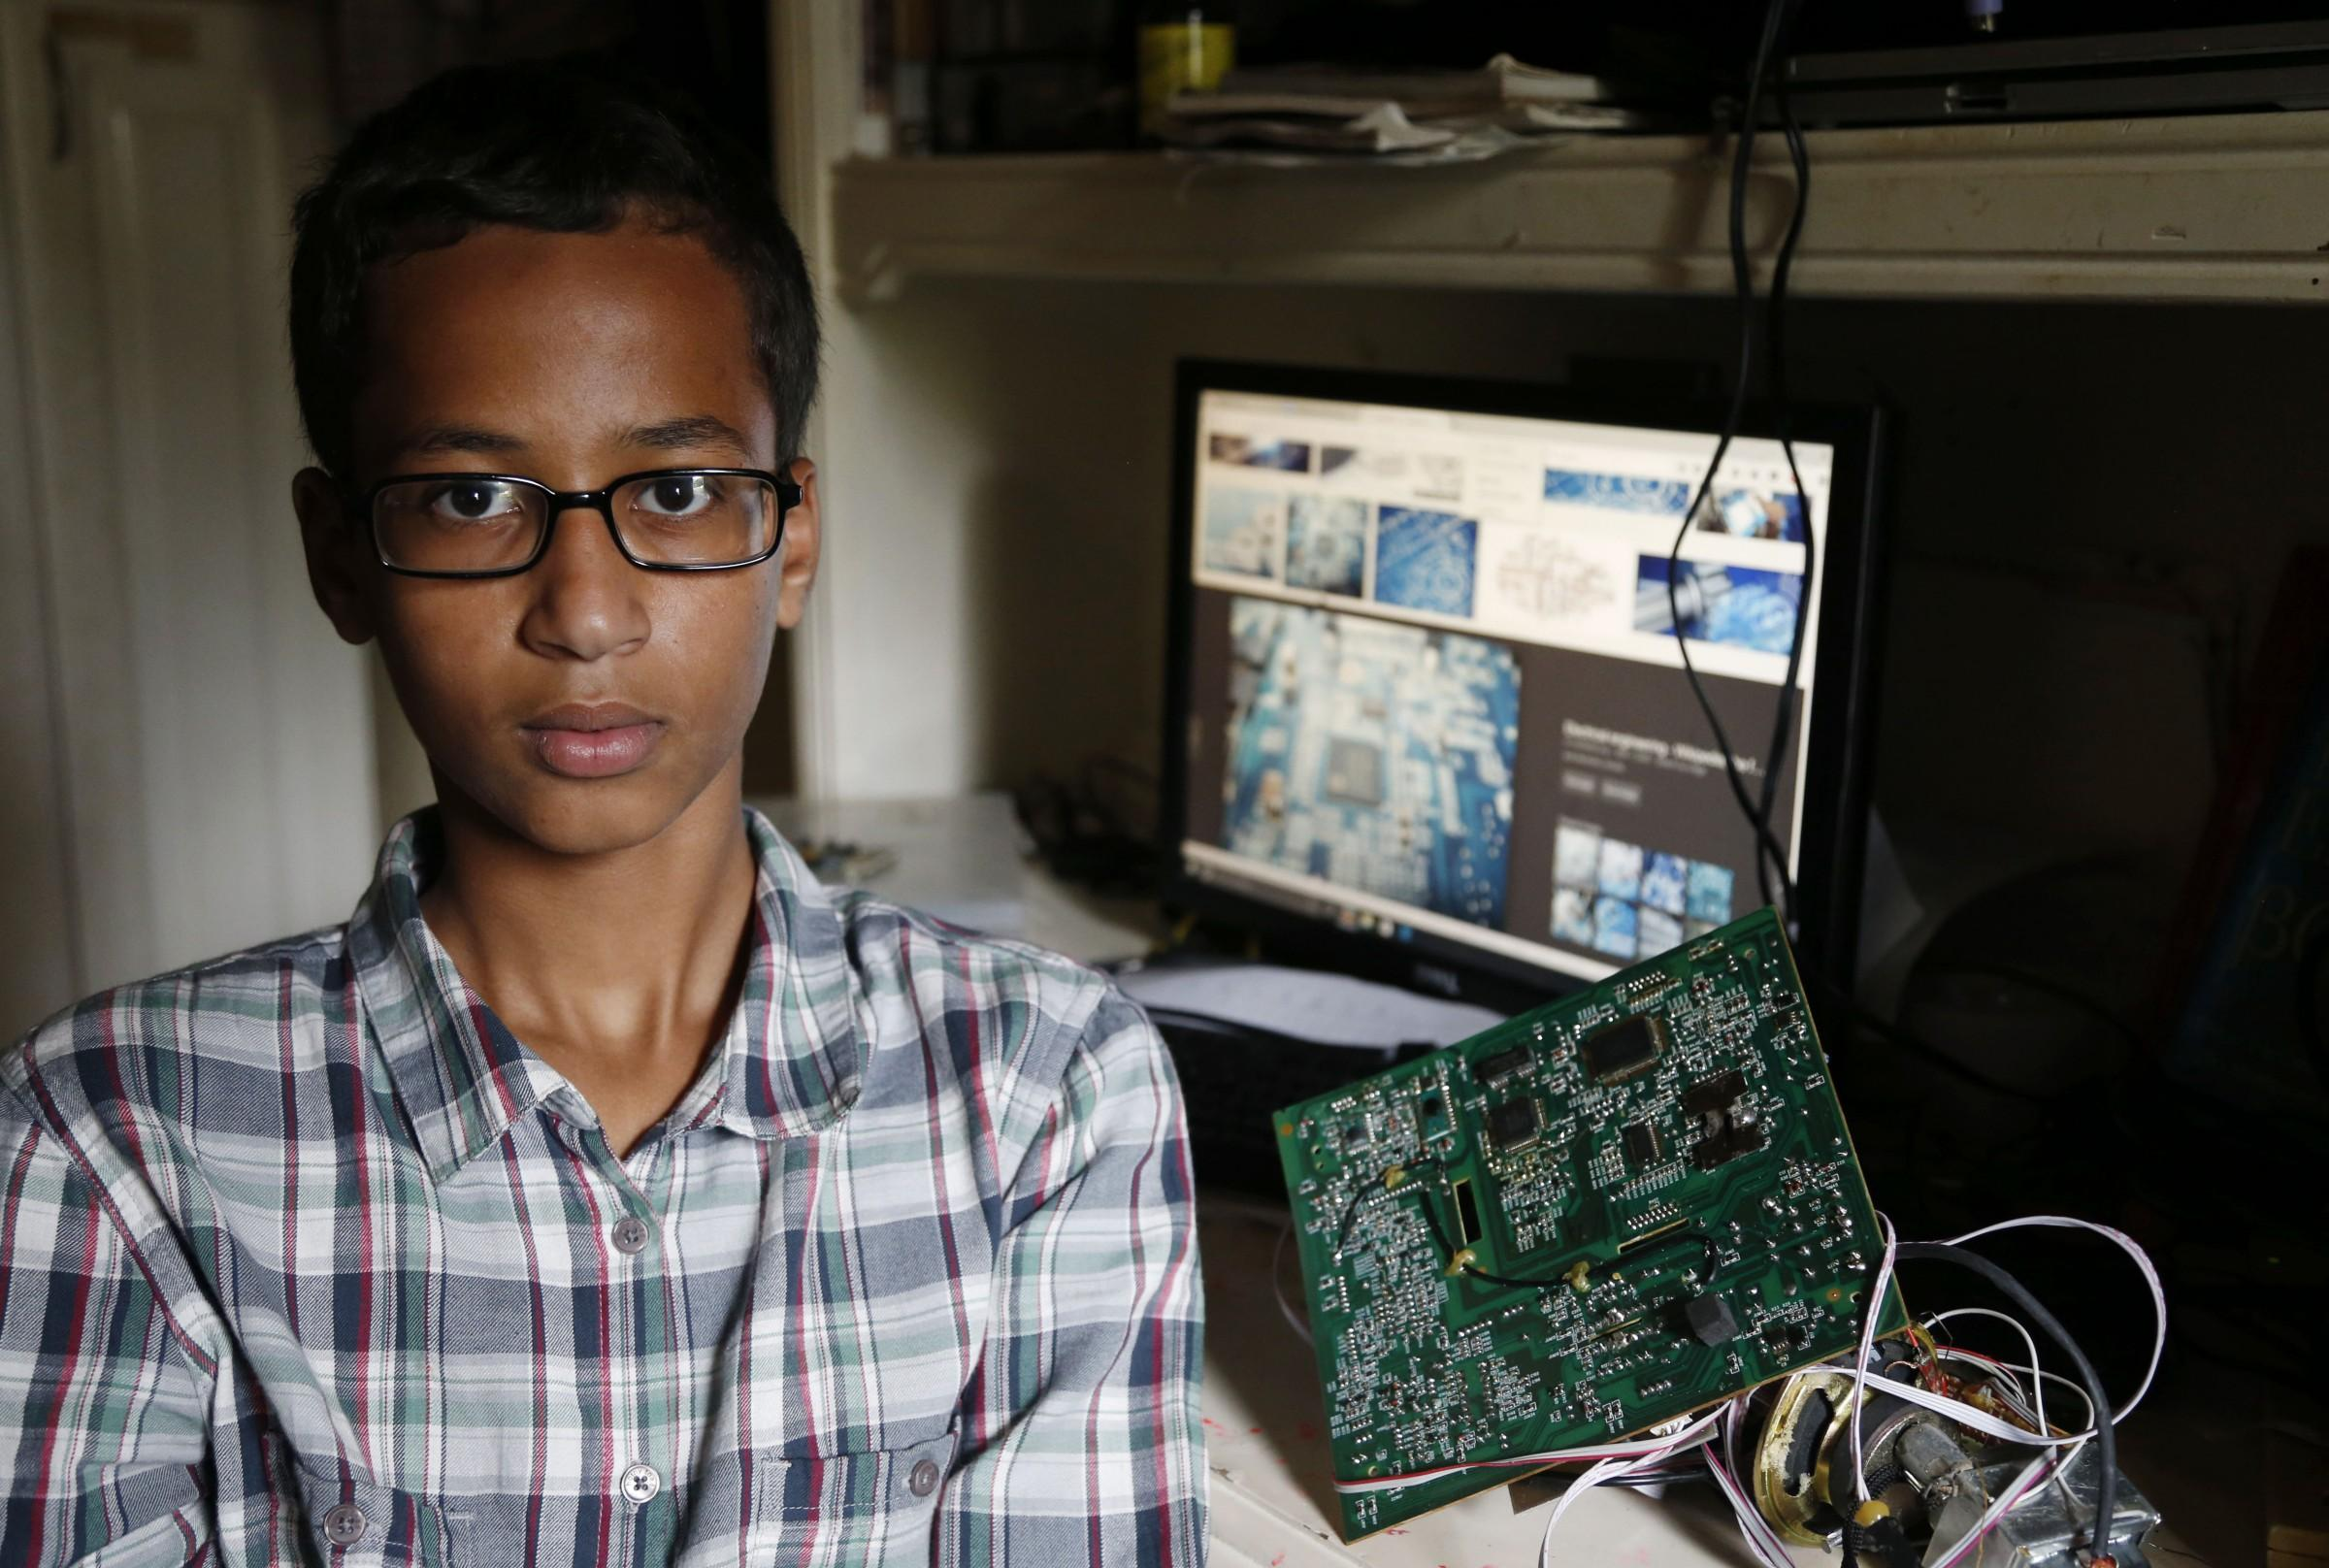 15 Sep 2015, Irving, Texas, USA --- Irving MacArthur High School student Ahmed Mohamed, 14, poses for a photo at his home in Irving, on Tuesday, September 15, 2015. Mohamed was arrested and interrogated by Irving Police officers on Monday after bringing a homemade clock to school. (Vernon Bryant/The Dallas Morning News) --- Image by © Vernon Bryant/Dallas Morning News/Corbis